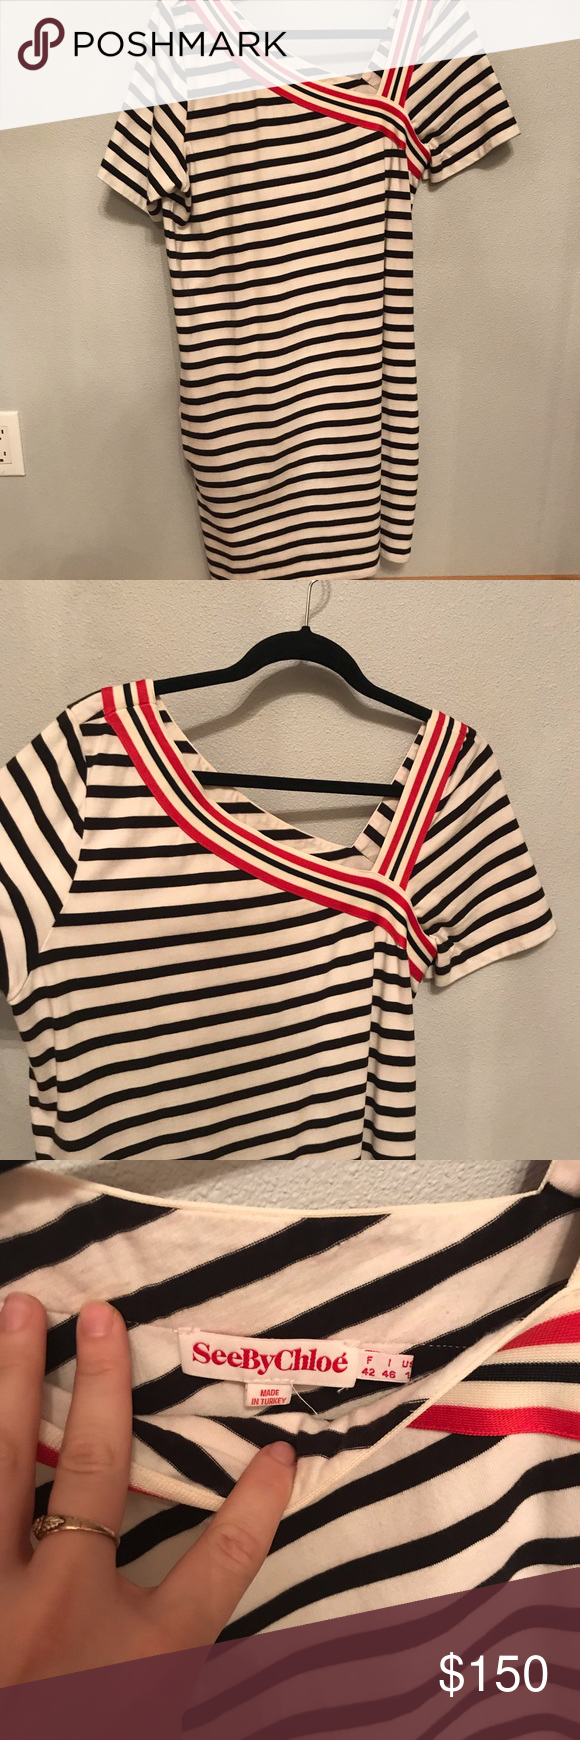 See by Chloe dress See by Chloe causal dress. Super funky asymmetrical neckline. Black stripe with red striped contrast. EUC. See By Chloe Dresses #seebychloe See by Chloe dress See by Chloe causal dress. Super funky asymmetrical neckline. Black stripe with red striped contrast. EUC. See By Chloe Dresses #seebychloe See by Chloe dress See by Chloe causal dress. Super funky asymmetrical neckline. Black stripe with red striped contrast. EUC. See By Chloe Dresses #seebychloe See by Chloe dress See #seebychloe